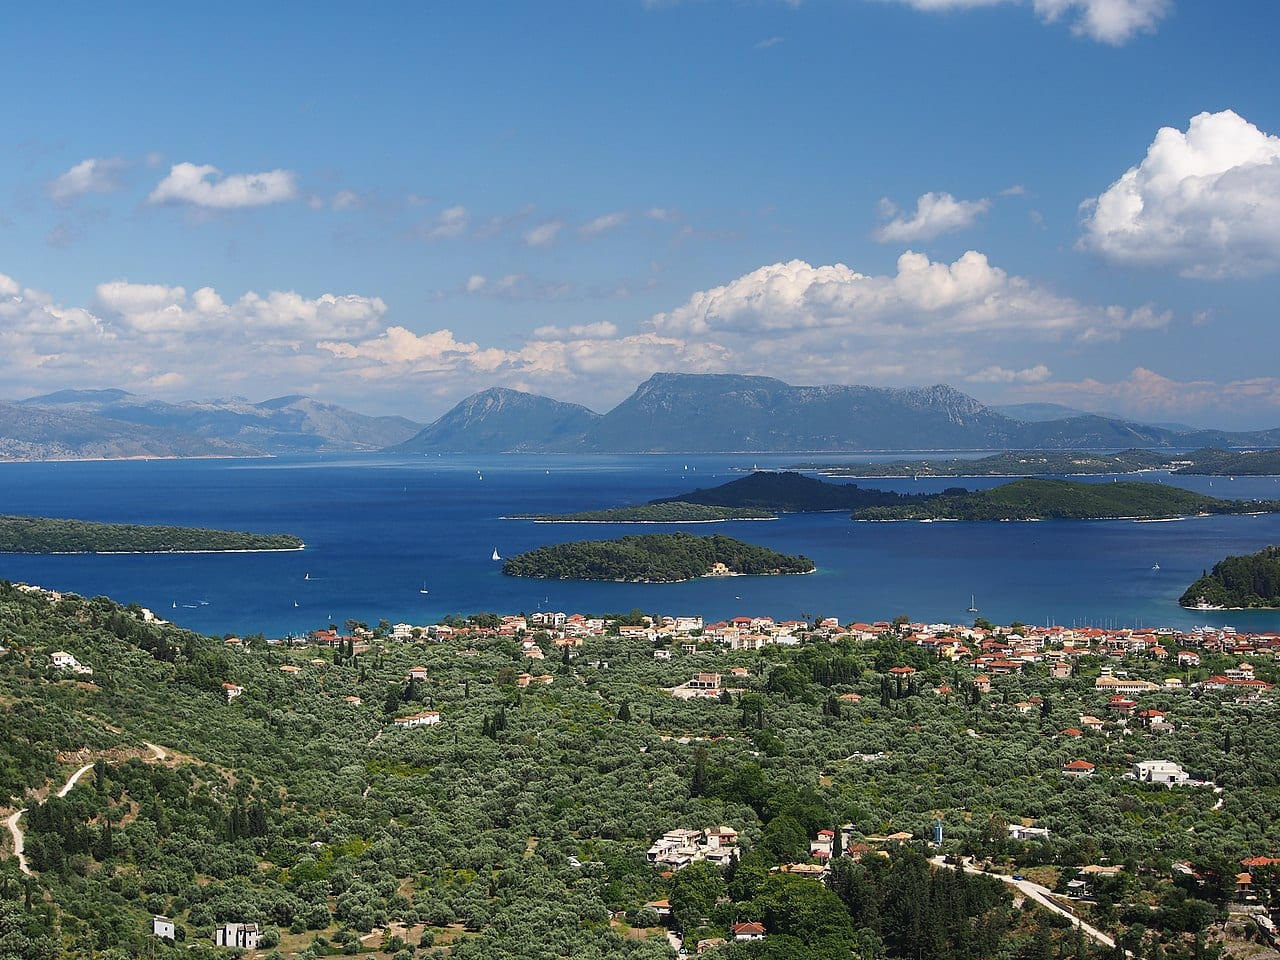 A view over Nydri in Lefkada